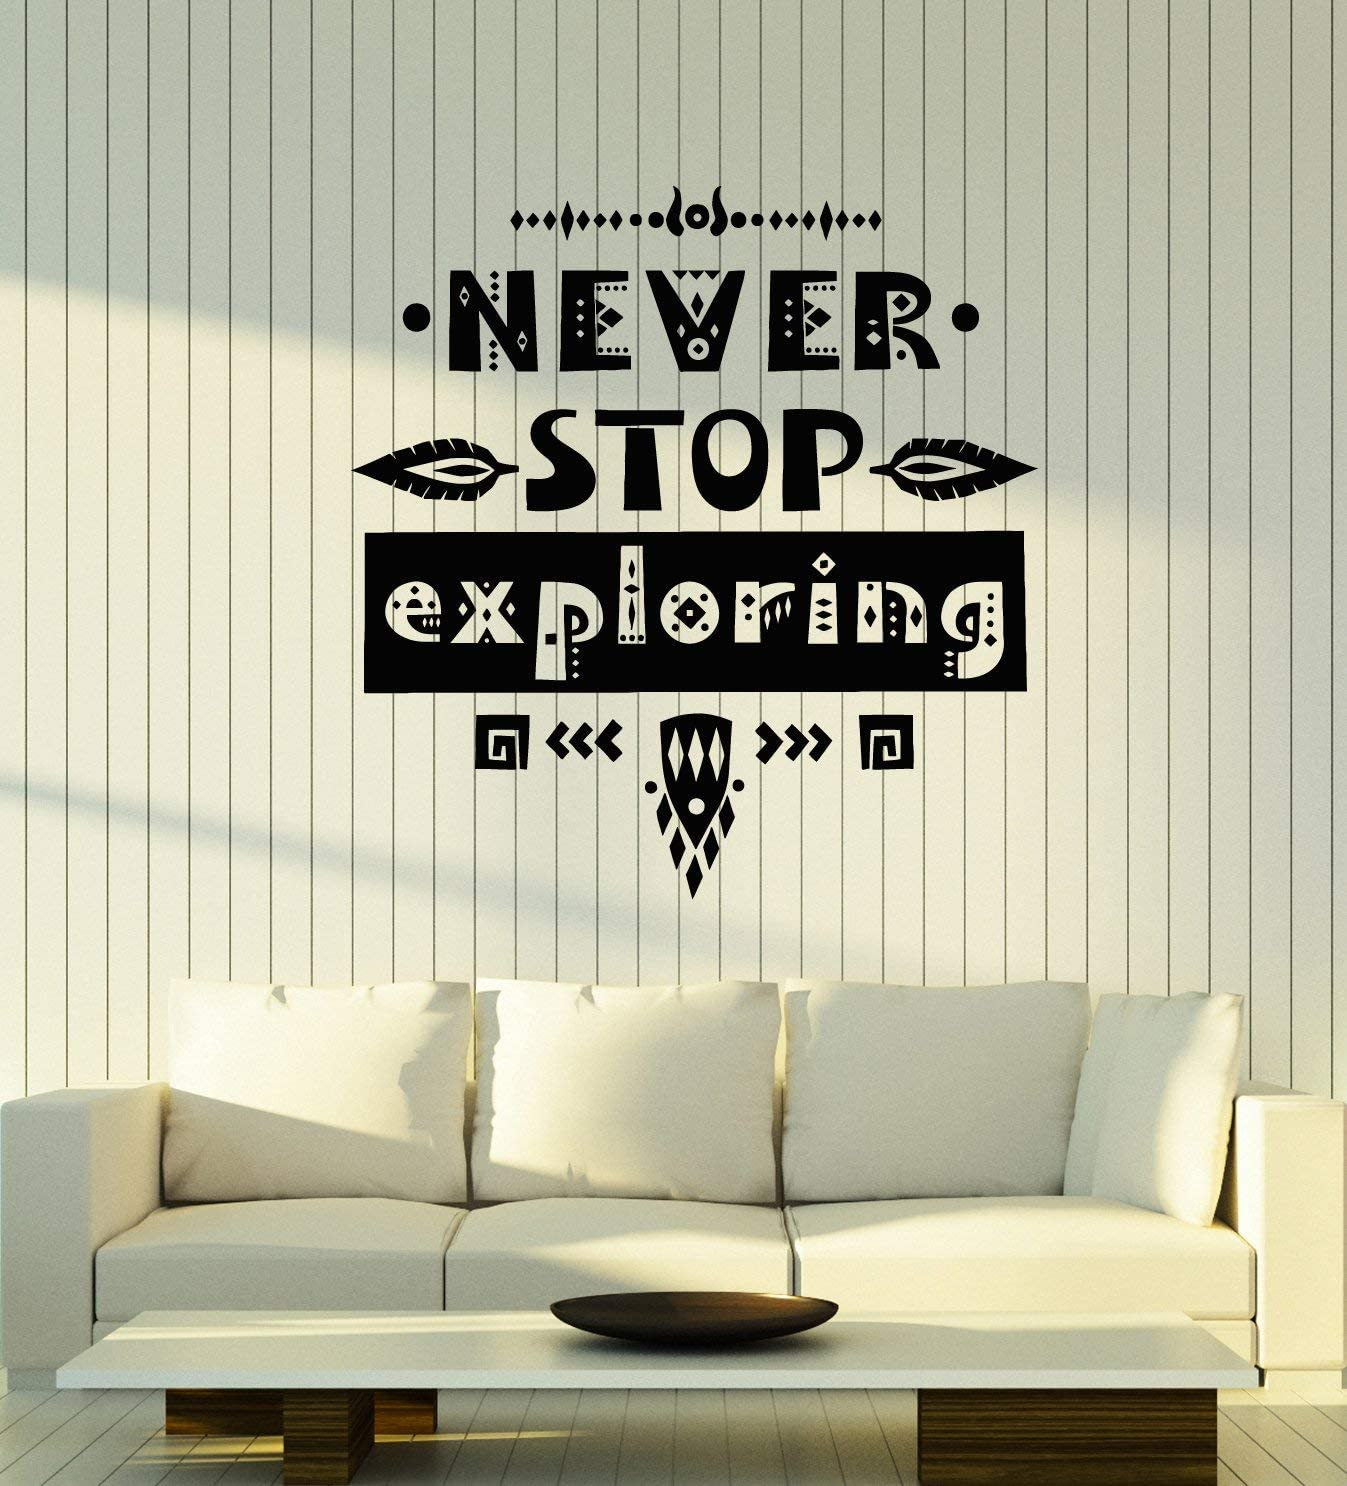 Vinyl Wall Decal Never Stop Exploring Adventure Motivational Phrase Stickers Mural Large Decor (g4392) Black